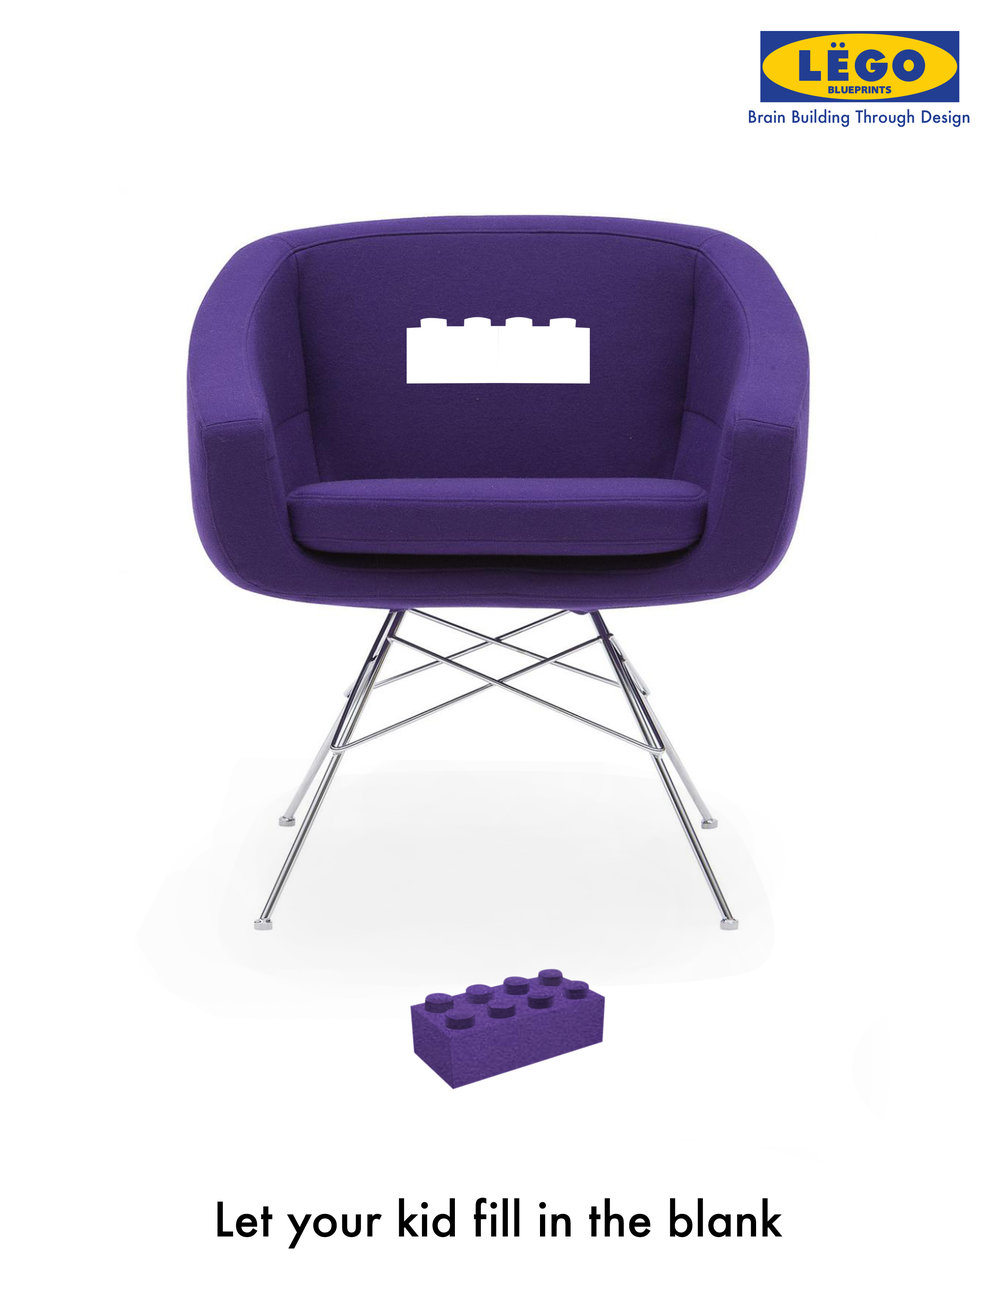 lego sofa chair print ad Purple.jpg